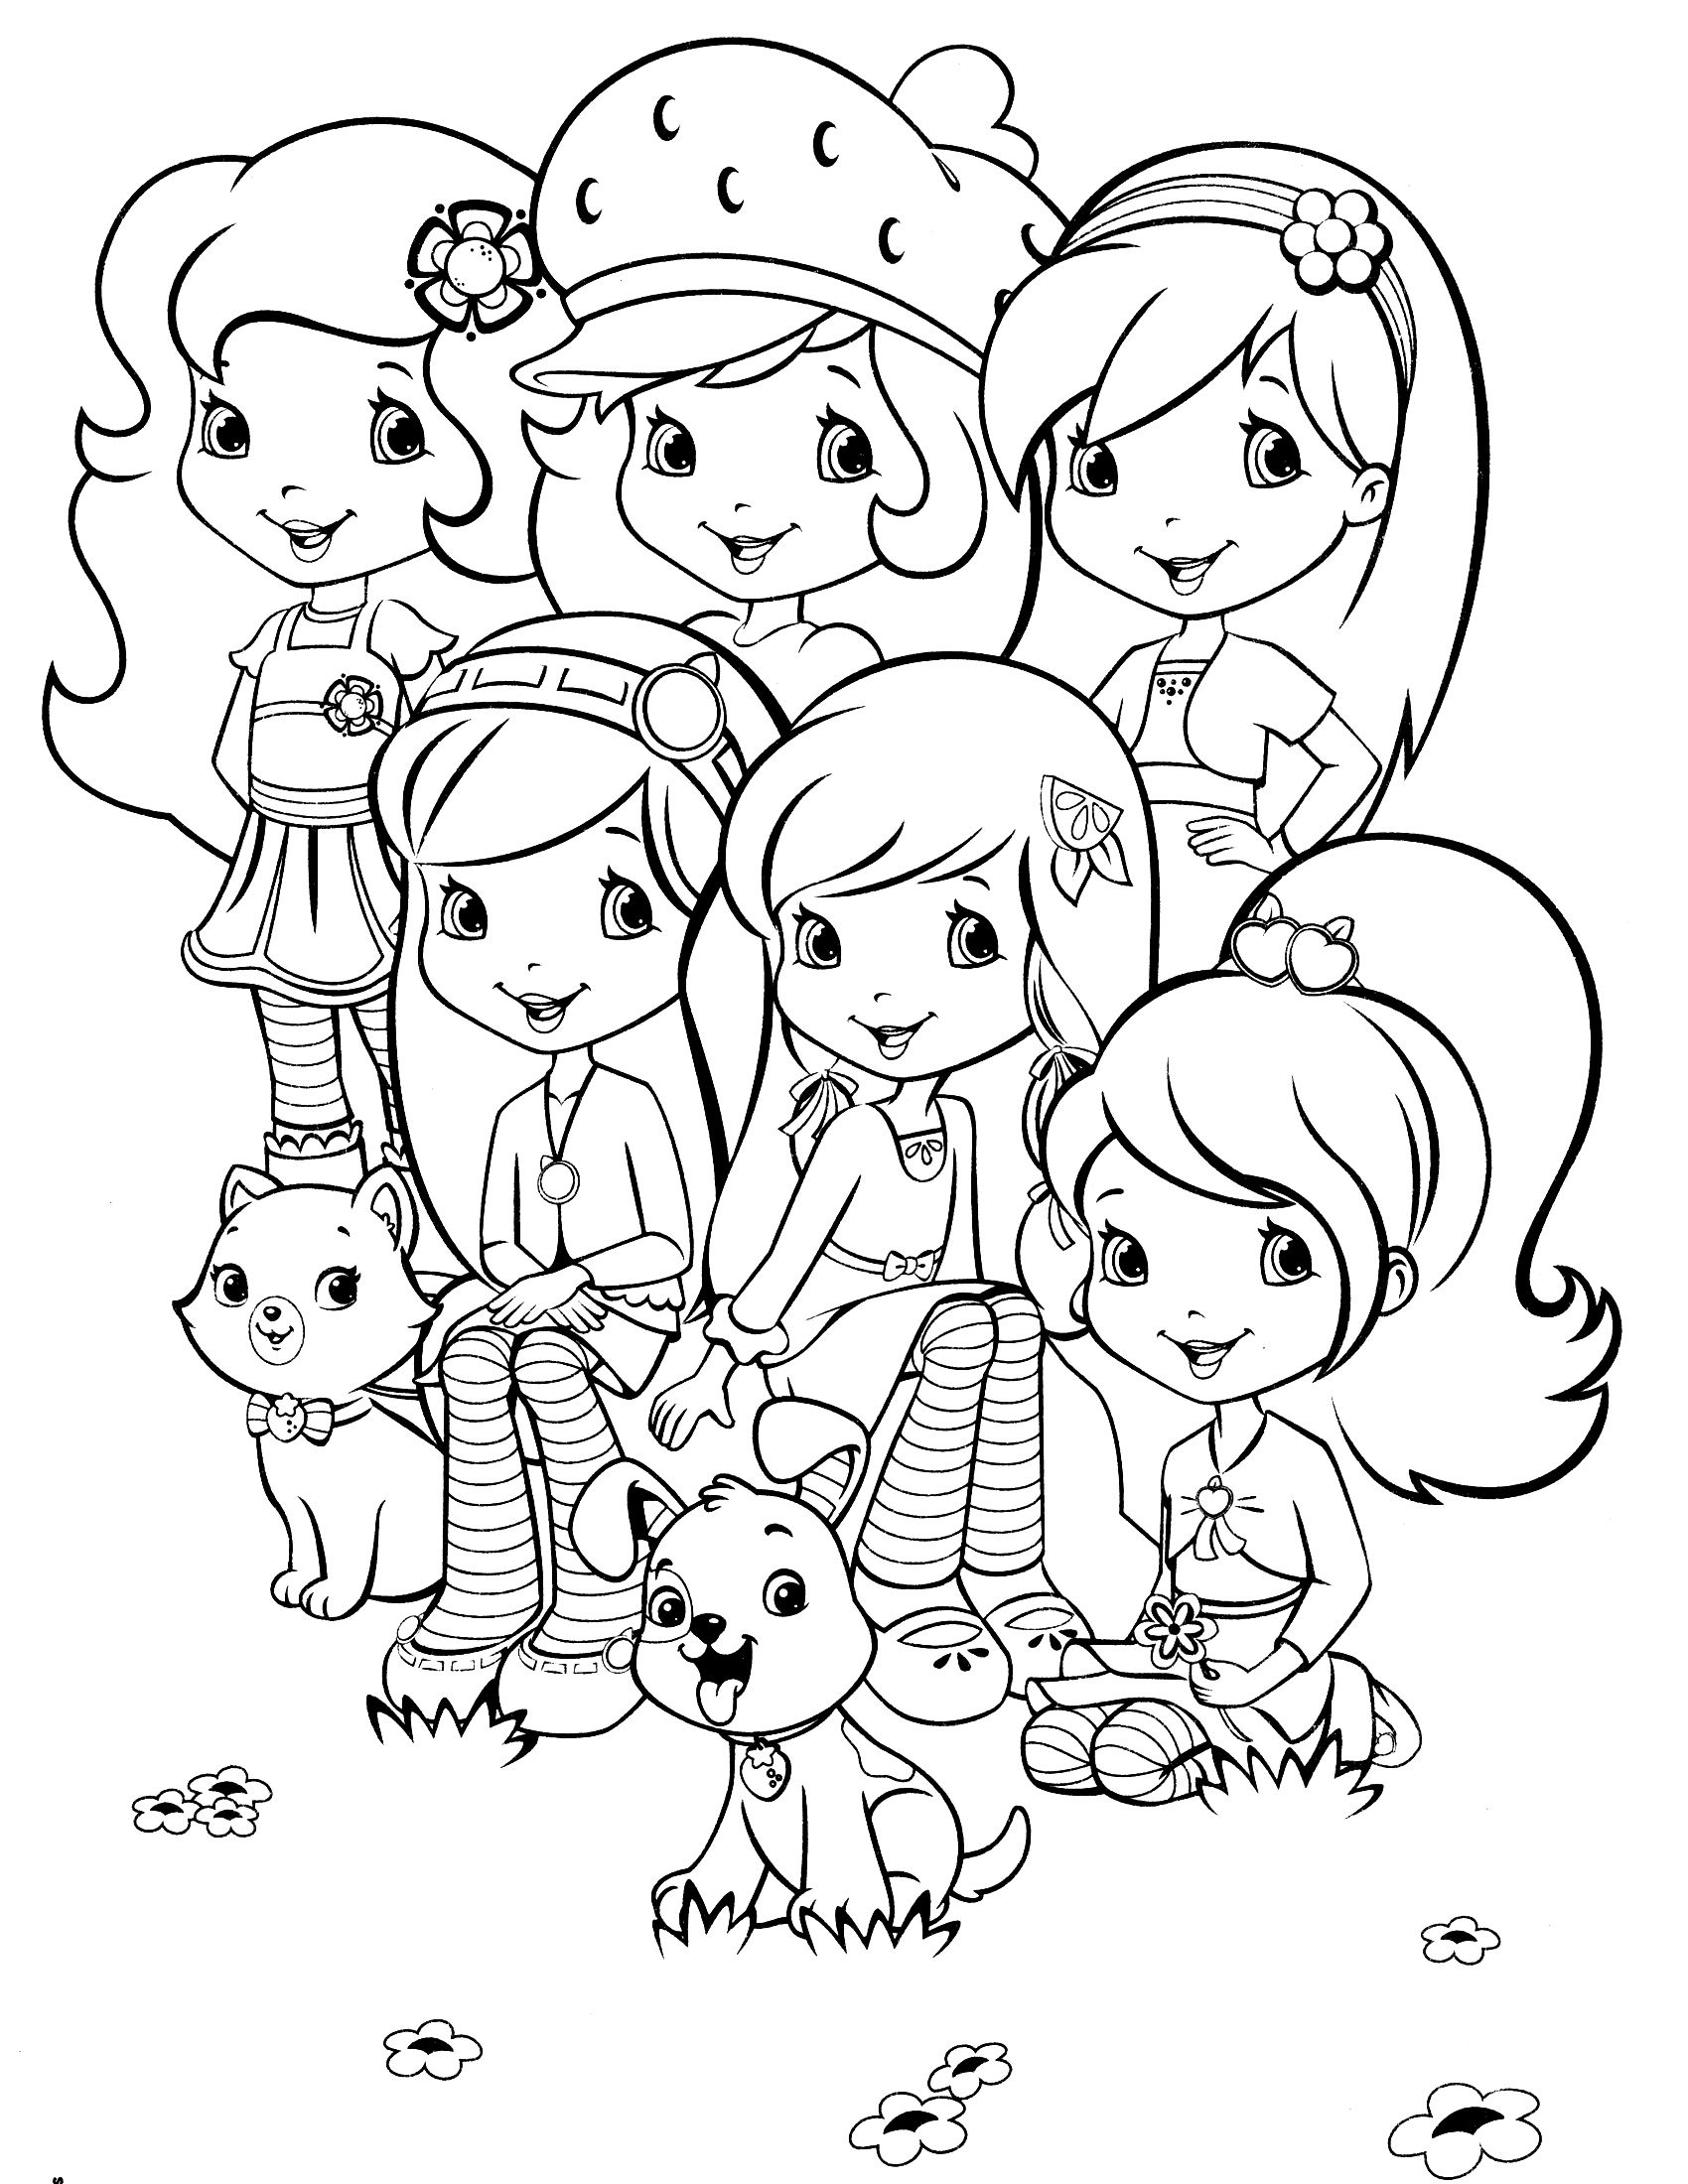 image about Strawberry Shortcake Printable Coloring Pages called strawberry shortcake printables Strawberry Shortcake